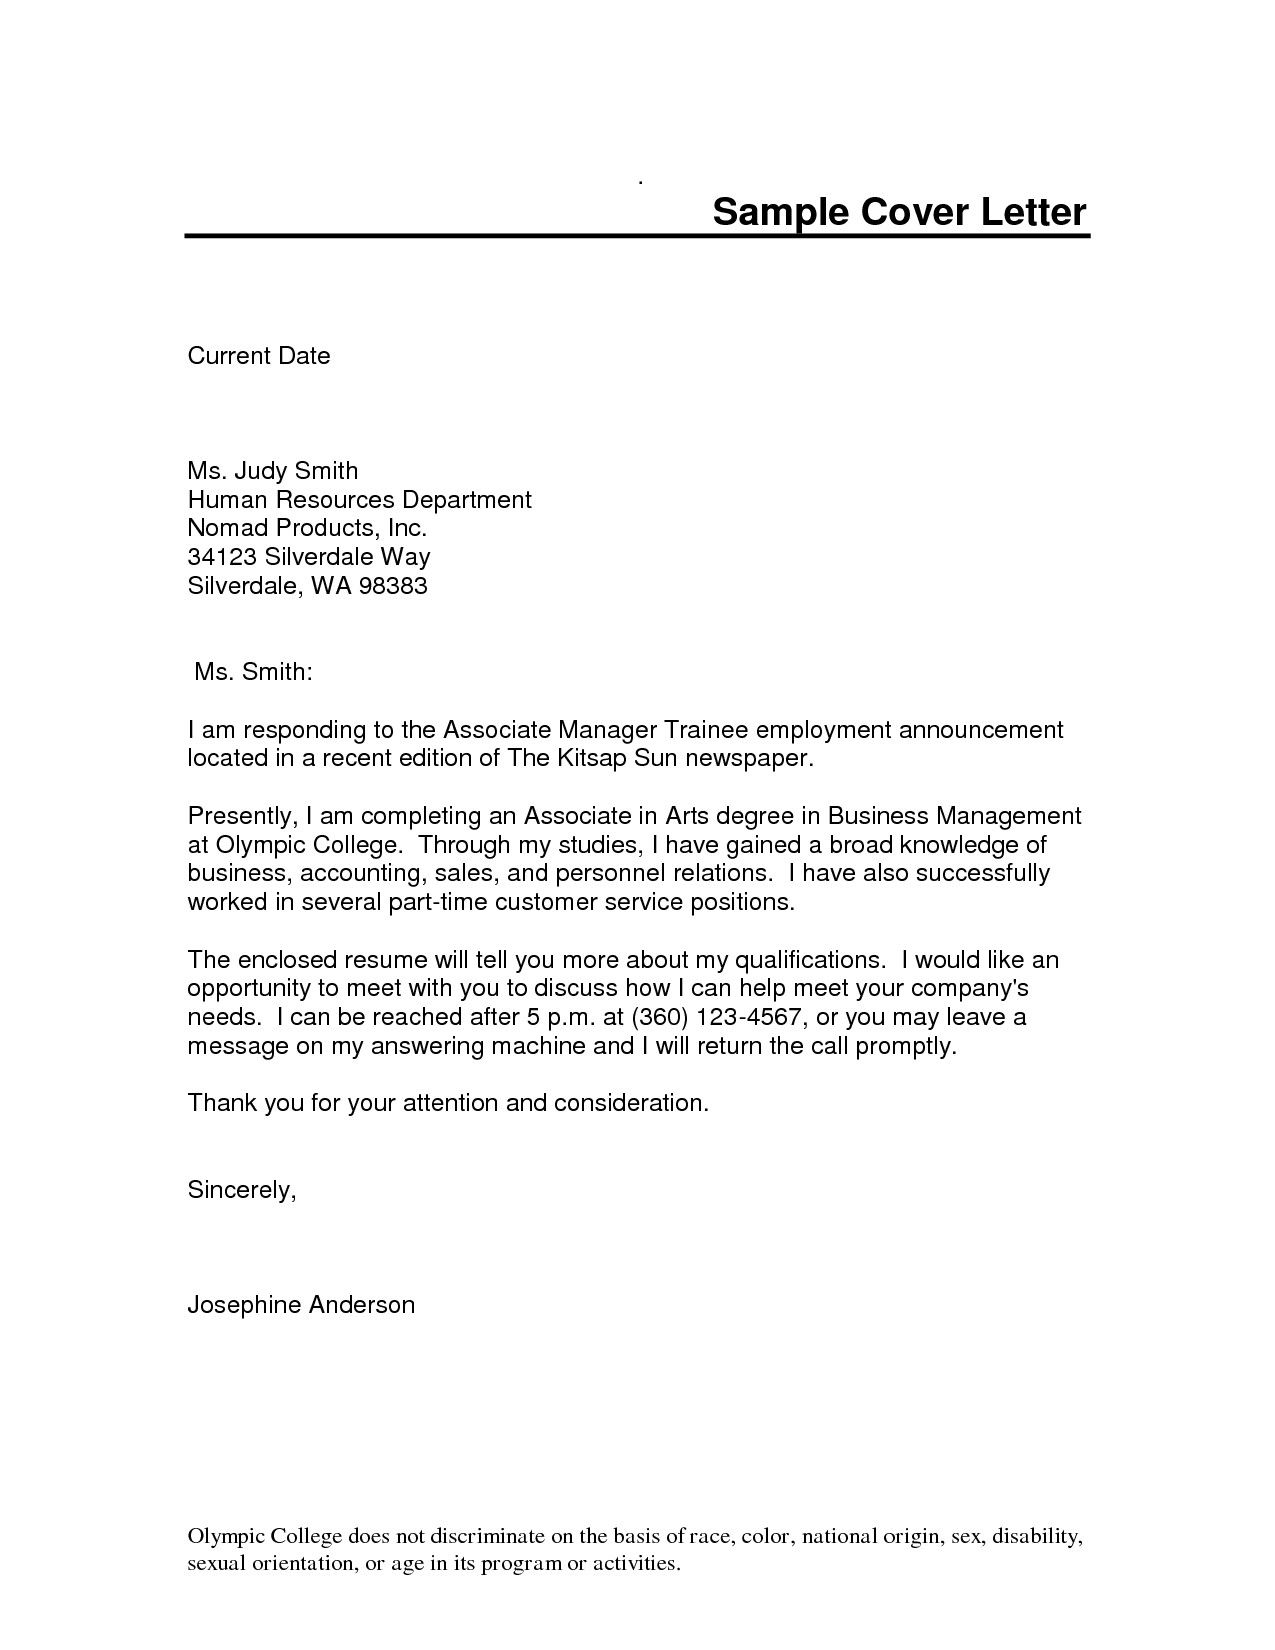 19 Microsoft Word Cover Letters Sample Templates Cute766